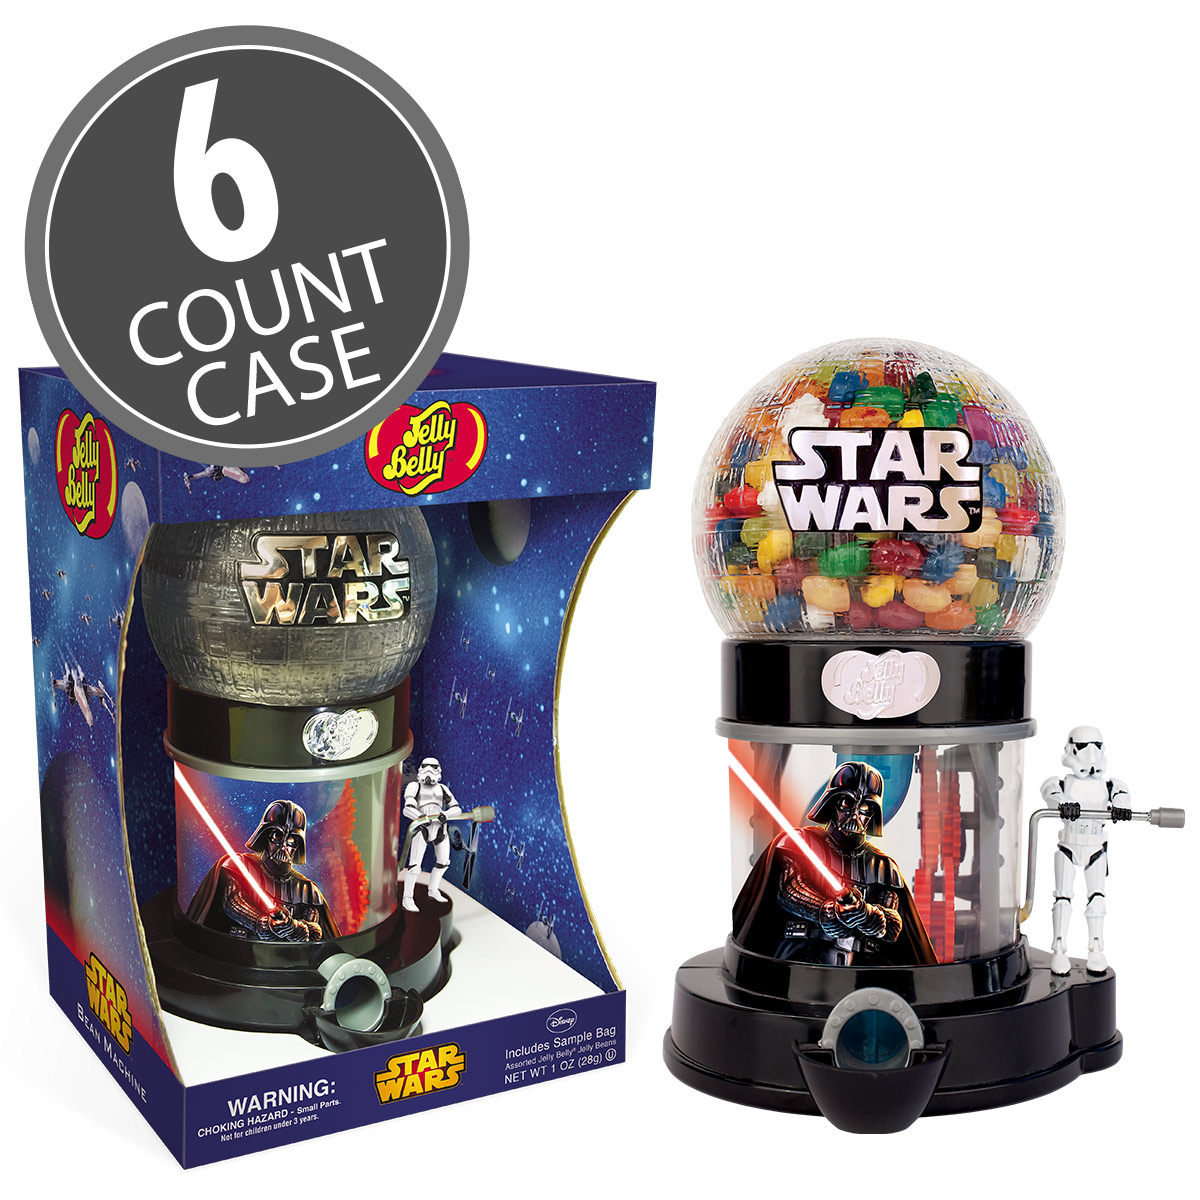 STAR WARS™ Bean Machine - 6 Count Case